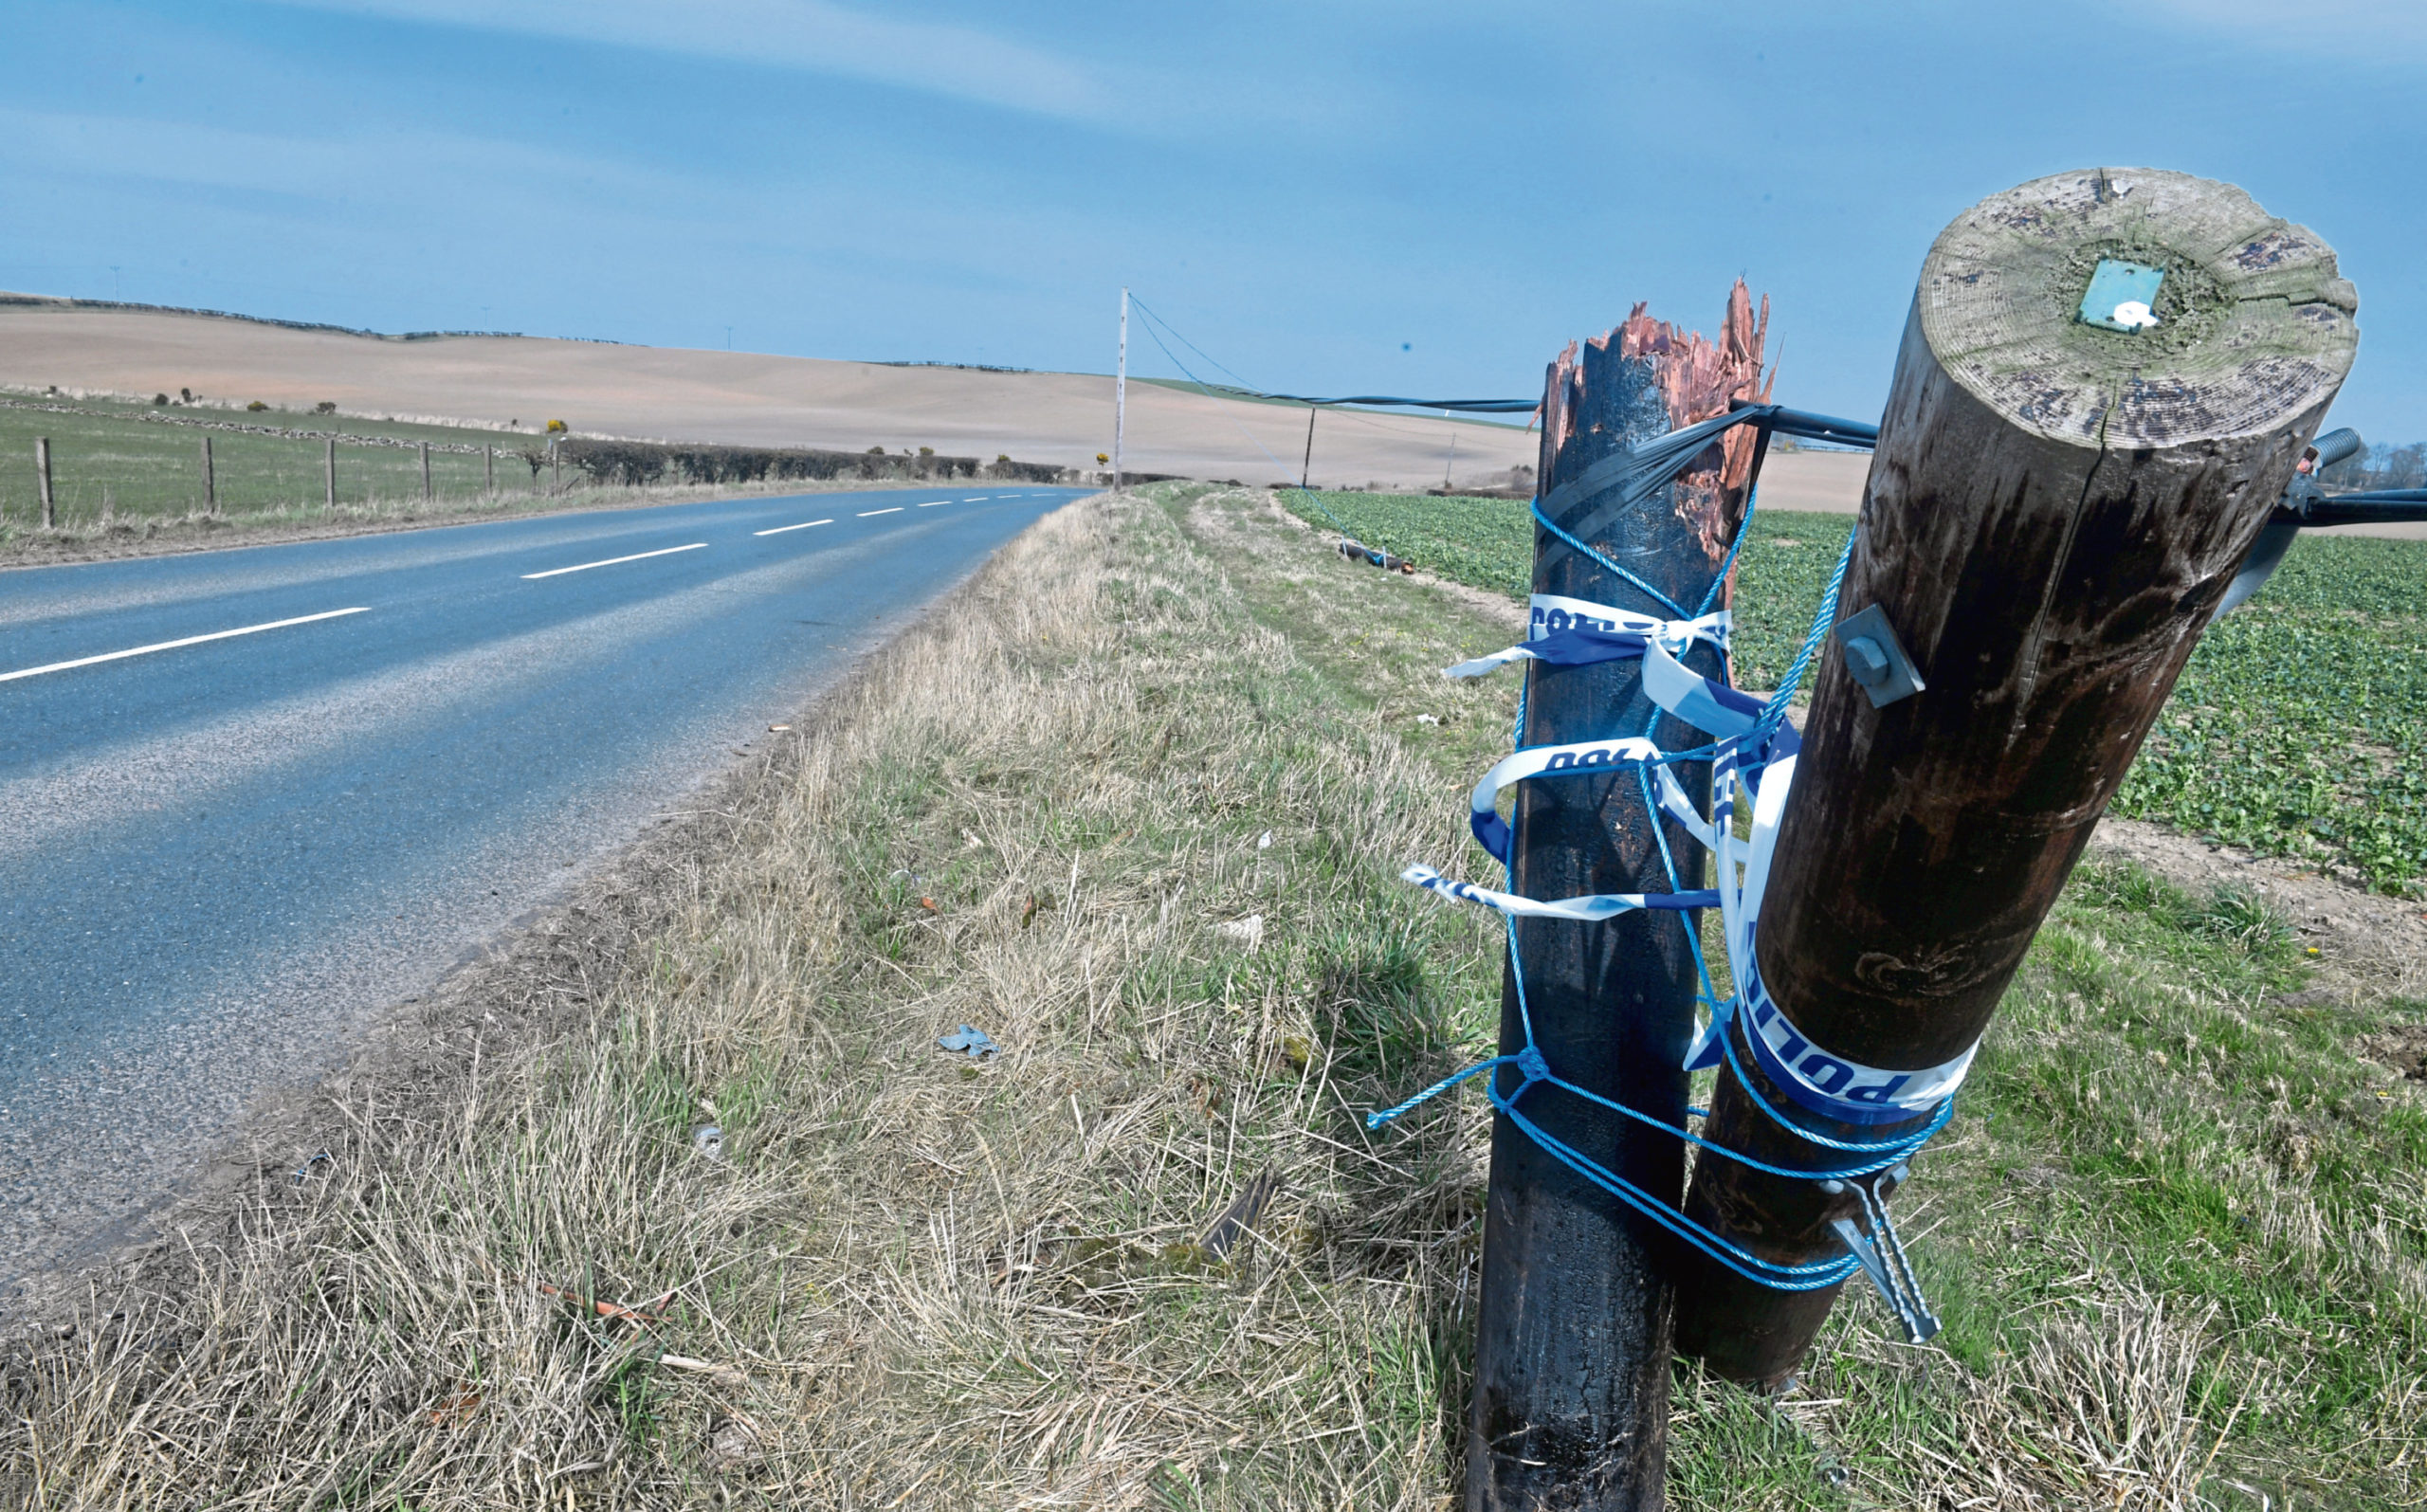 The scene of the crash  on the B9170 Oldmeldrum to Methlick road between Meldrum House Hotel and Formartine's Cafe